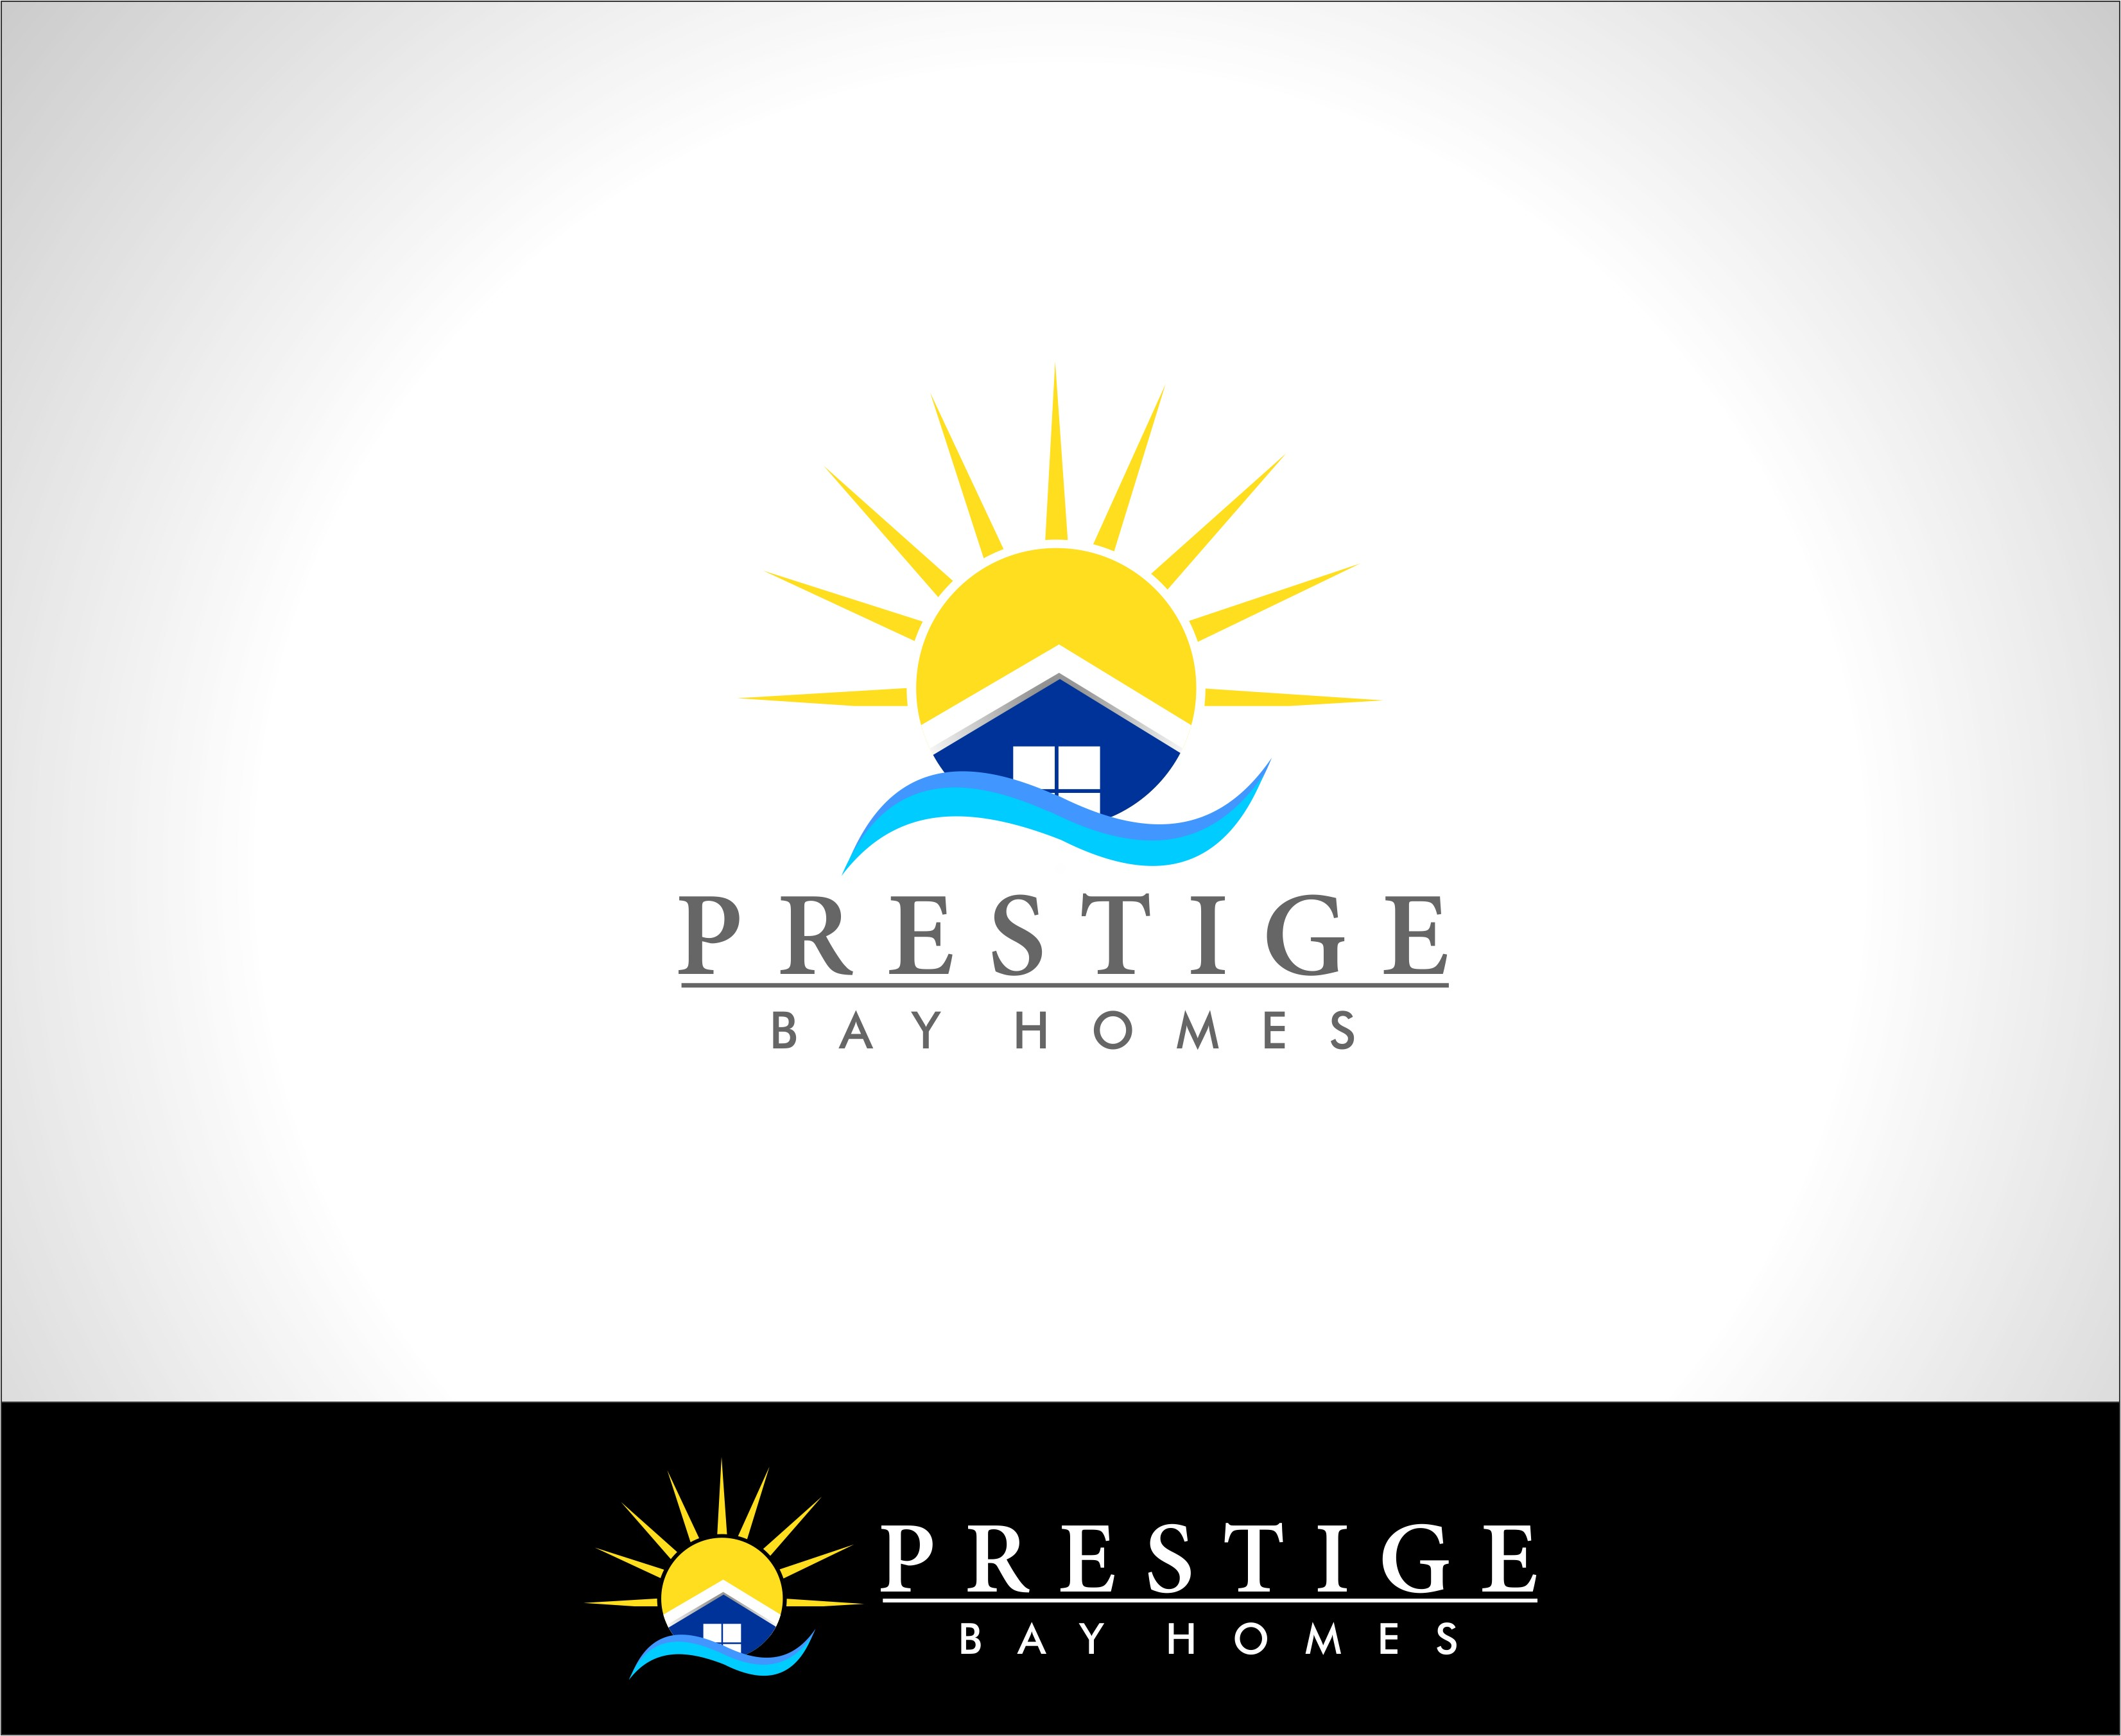 Logo Design by Mhon_Rose - Entry No. 18 in the Logo Design Contest Imaginative Logo Design for Prestige Bay Homes.